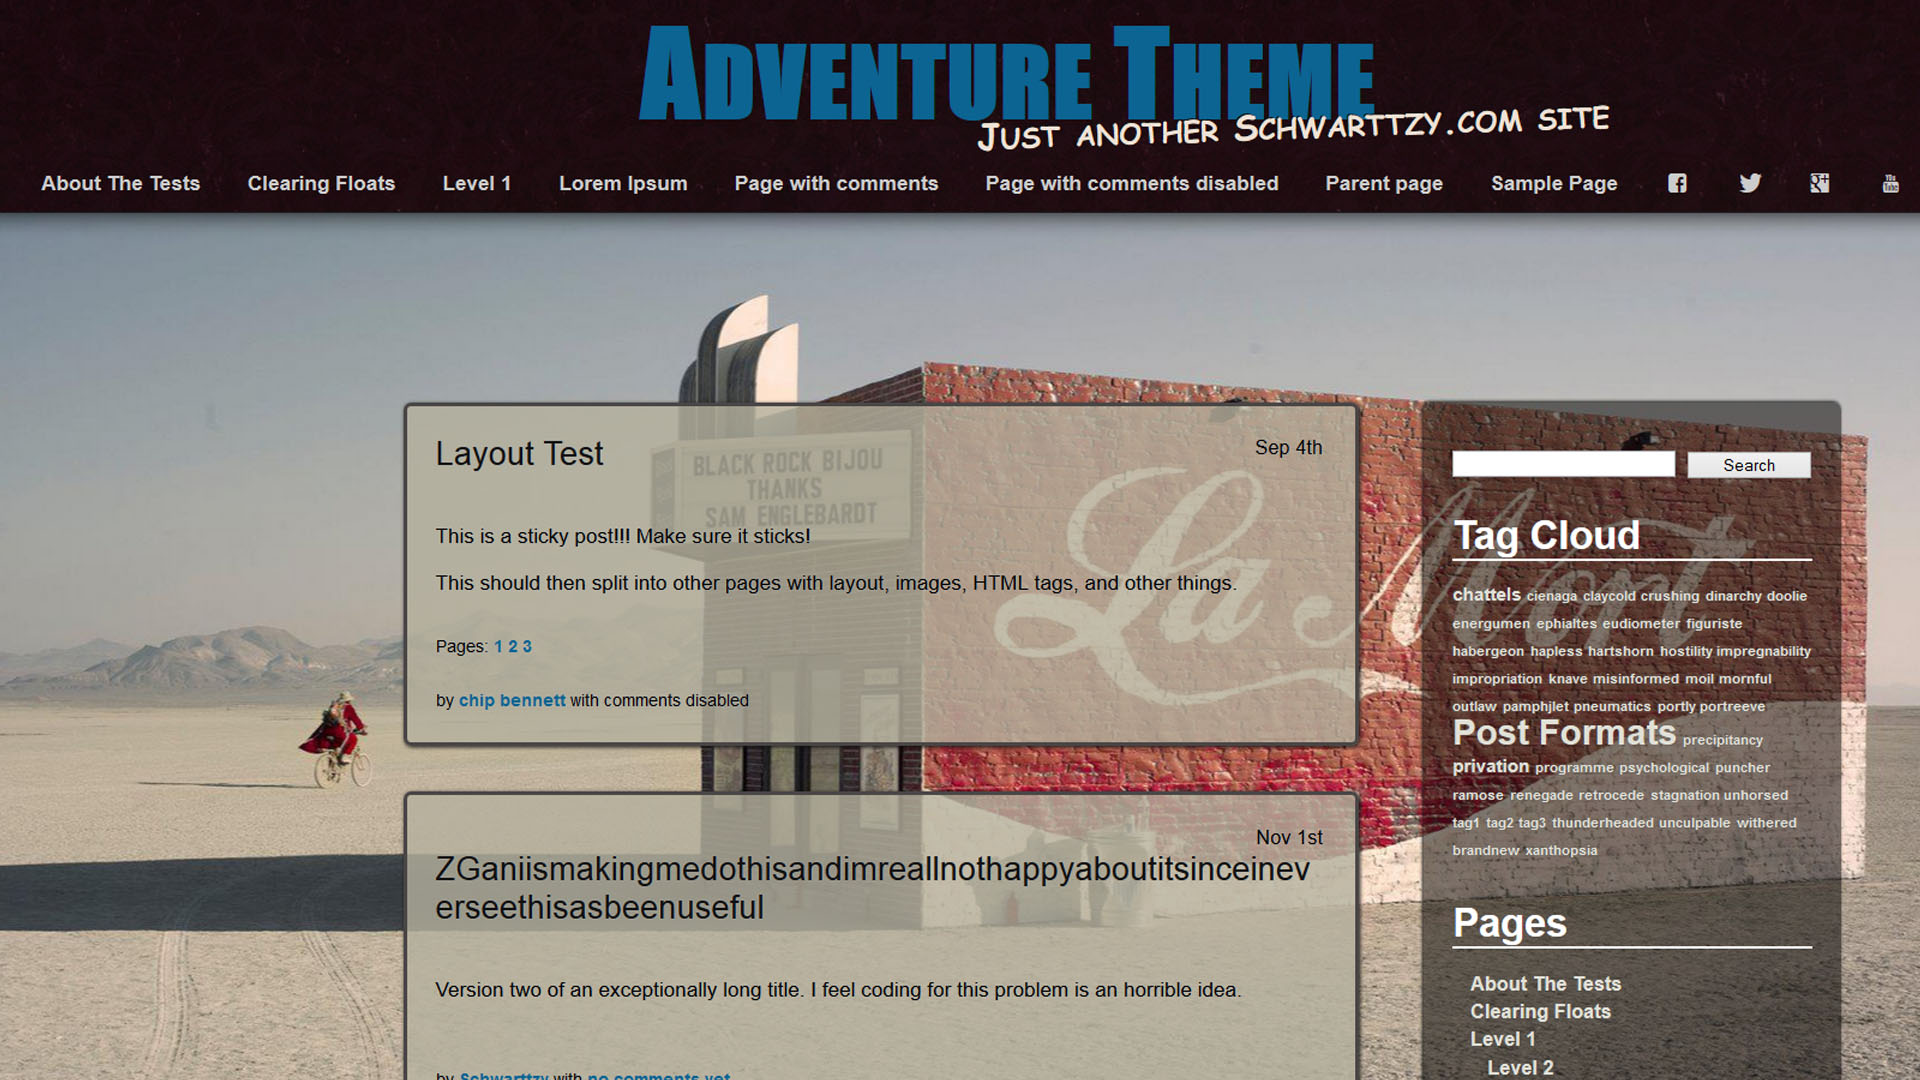 News Website Color Theme Old Fashioned